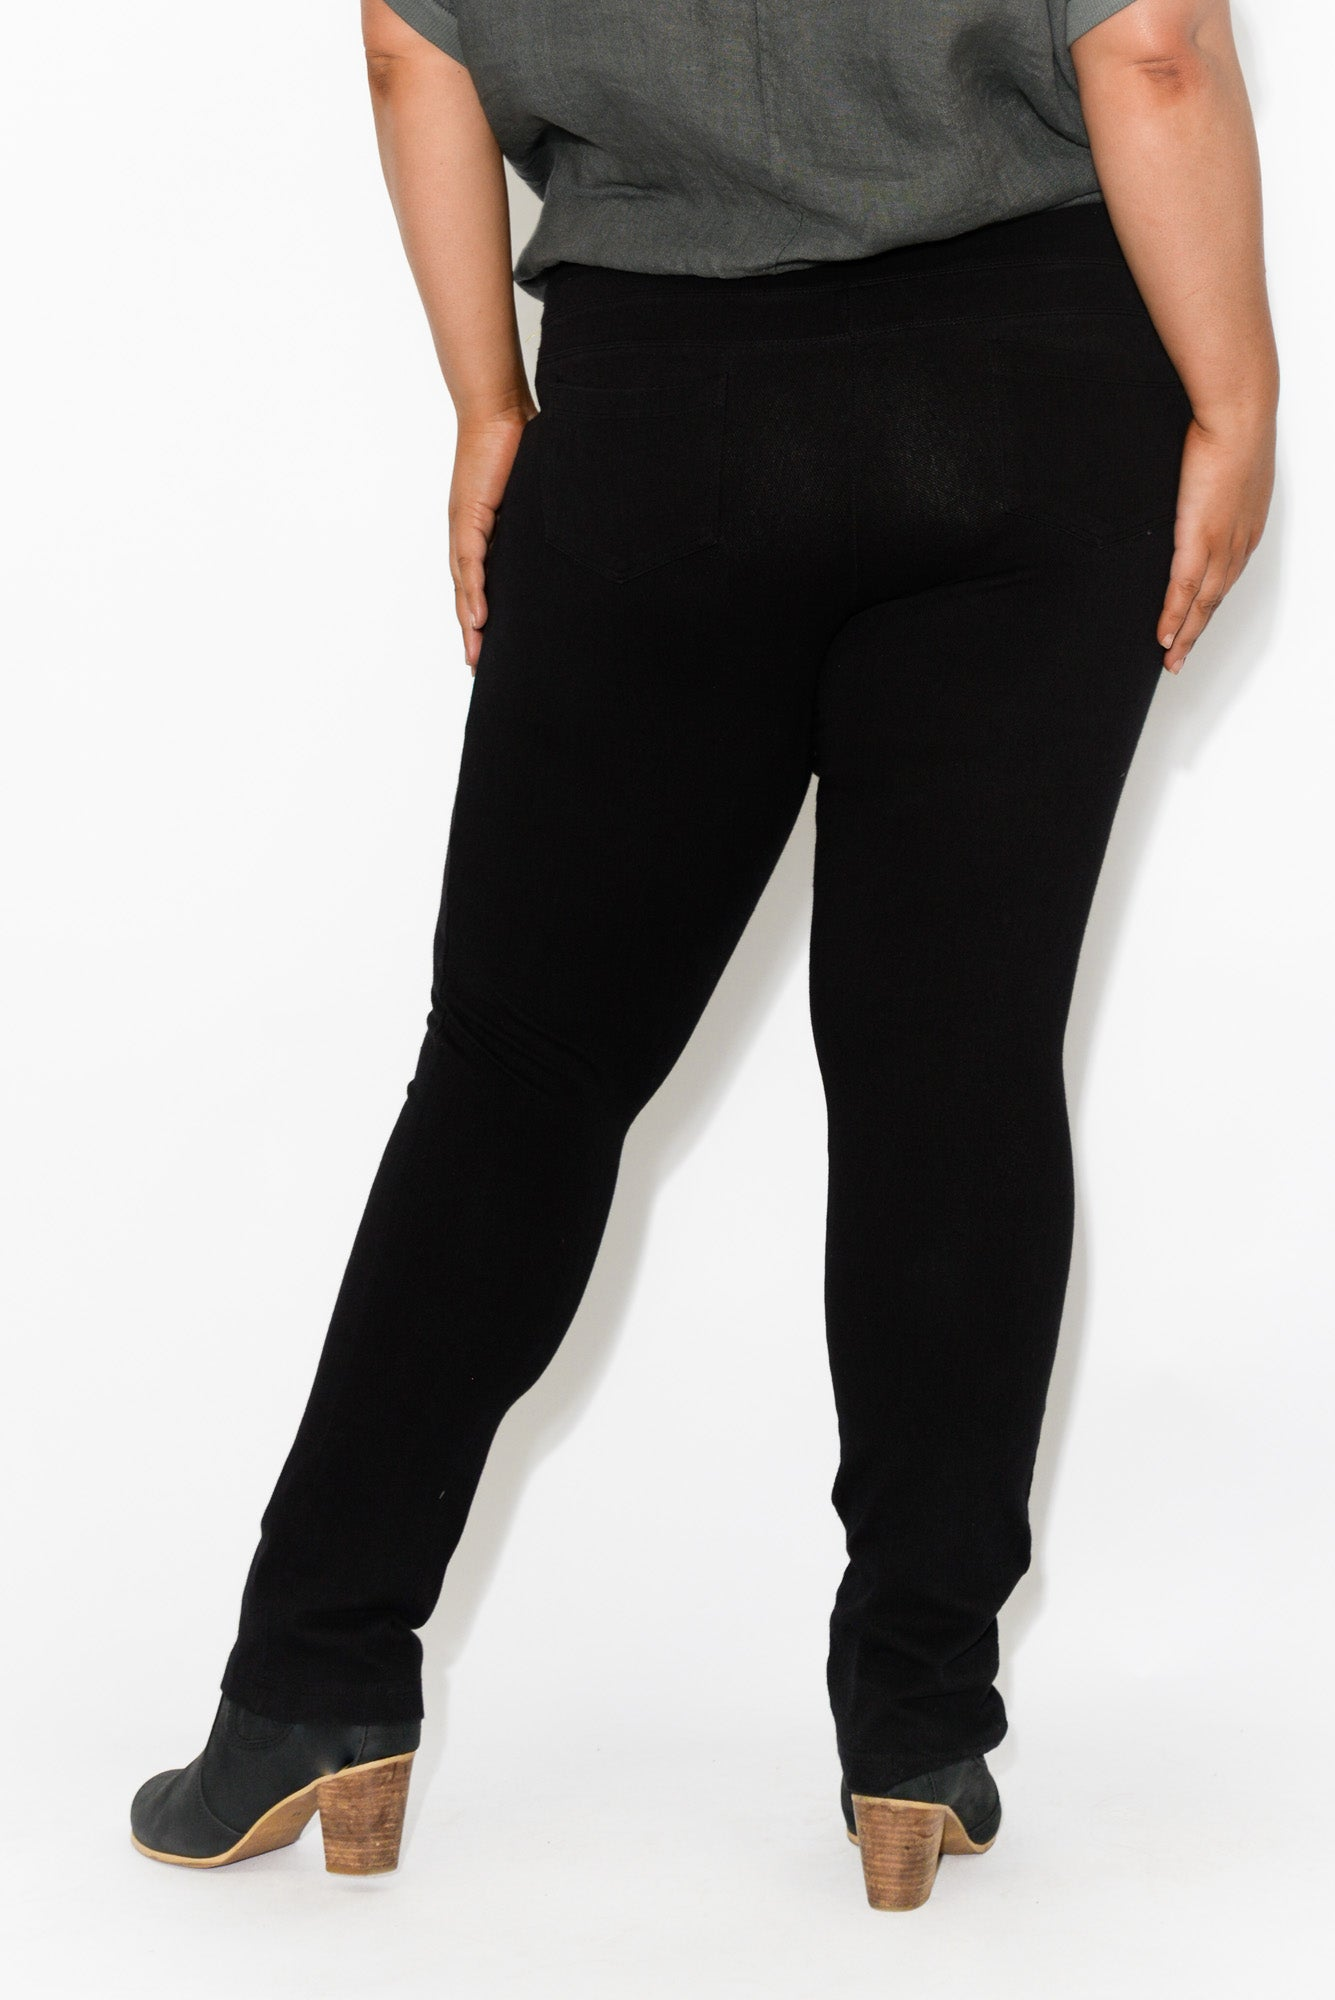 Chester Black Stretch Ponte Pant